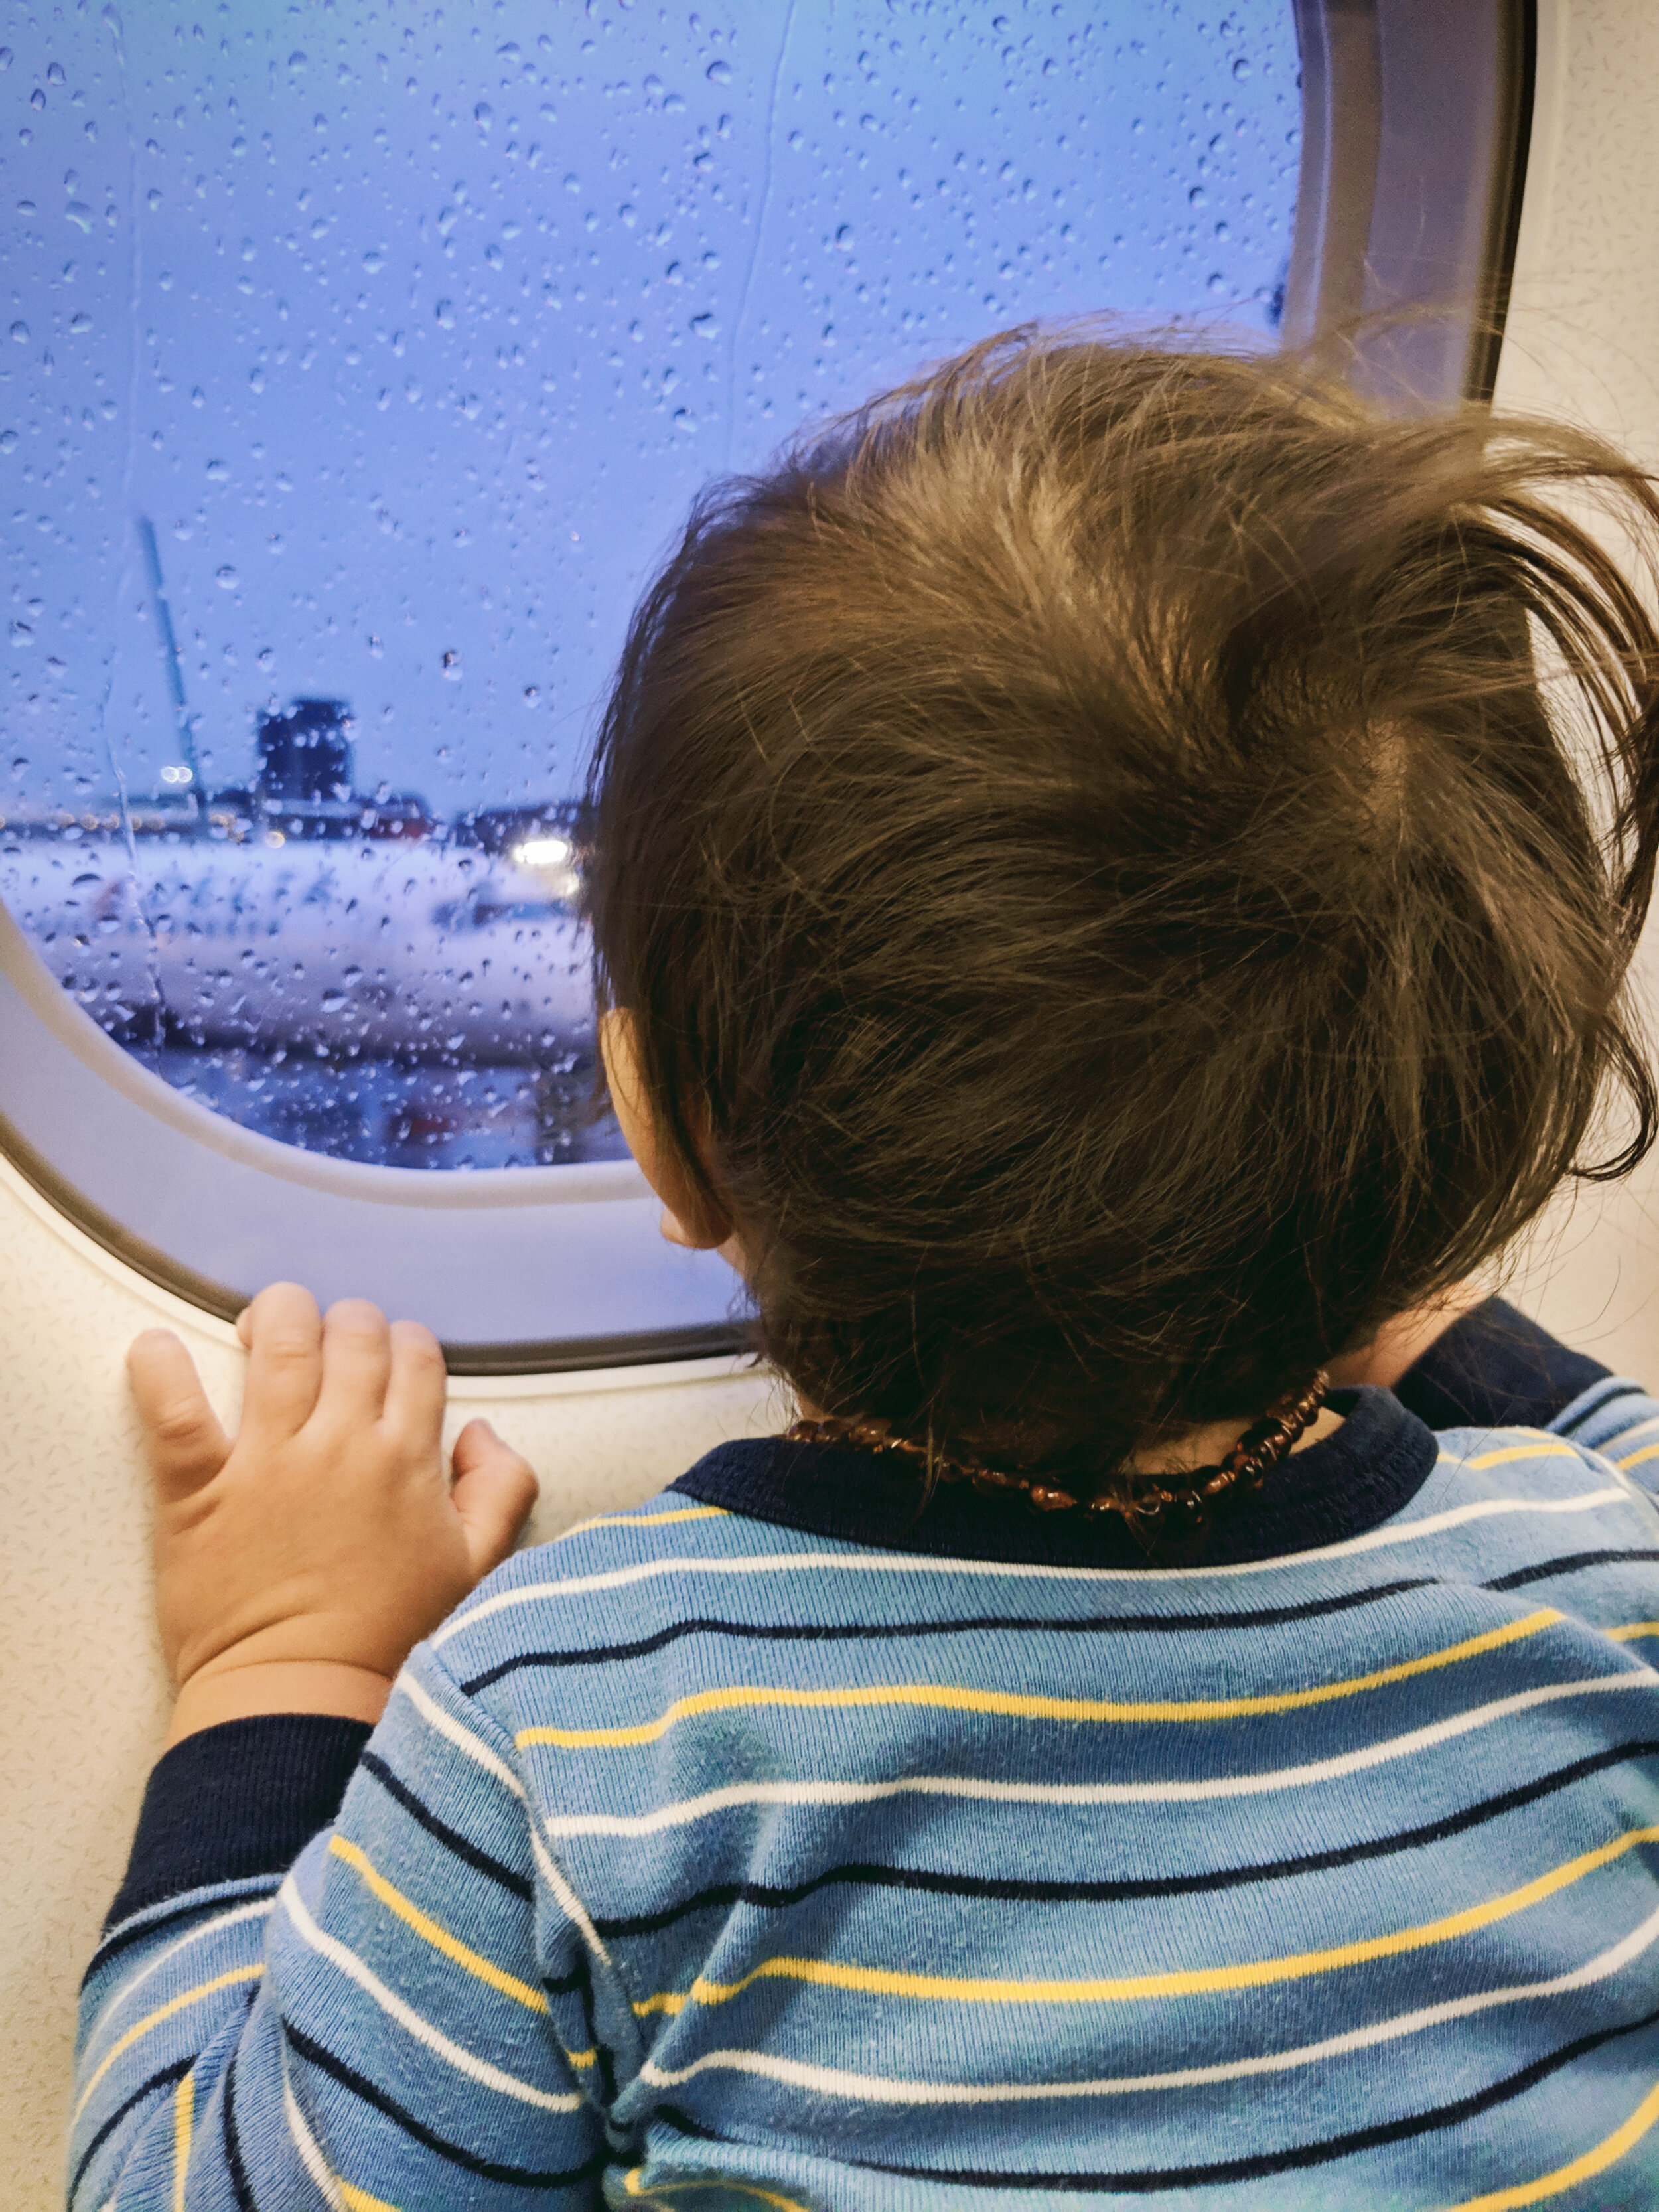 Watching the planes on a rainy flight day